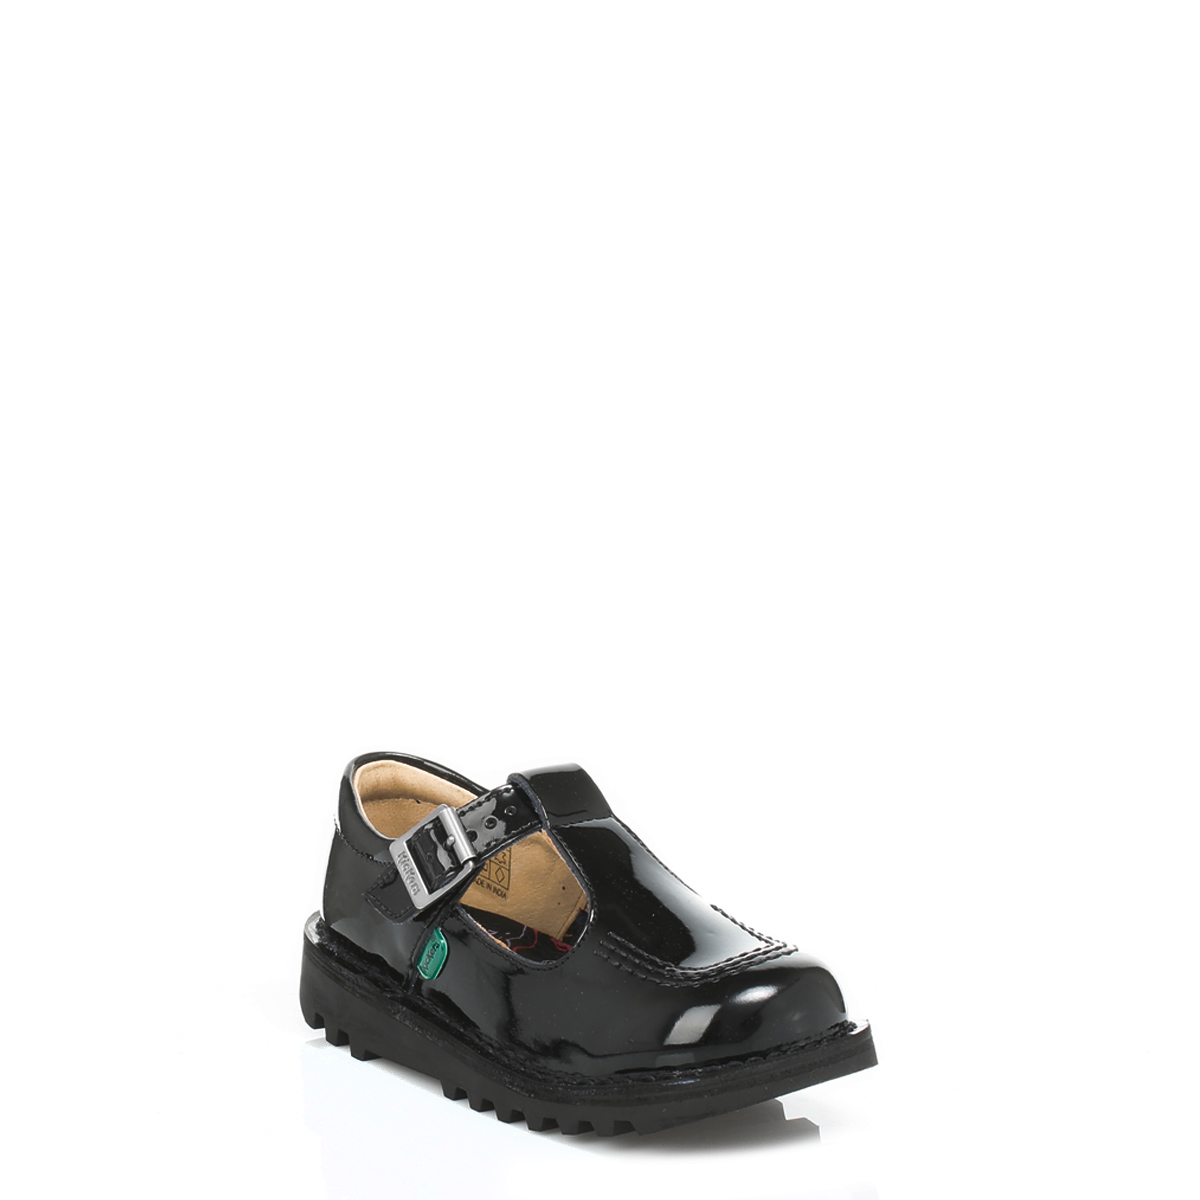 Kickers Kids Infant Black Patent Leather Shoes Buckle